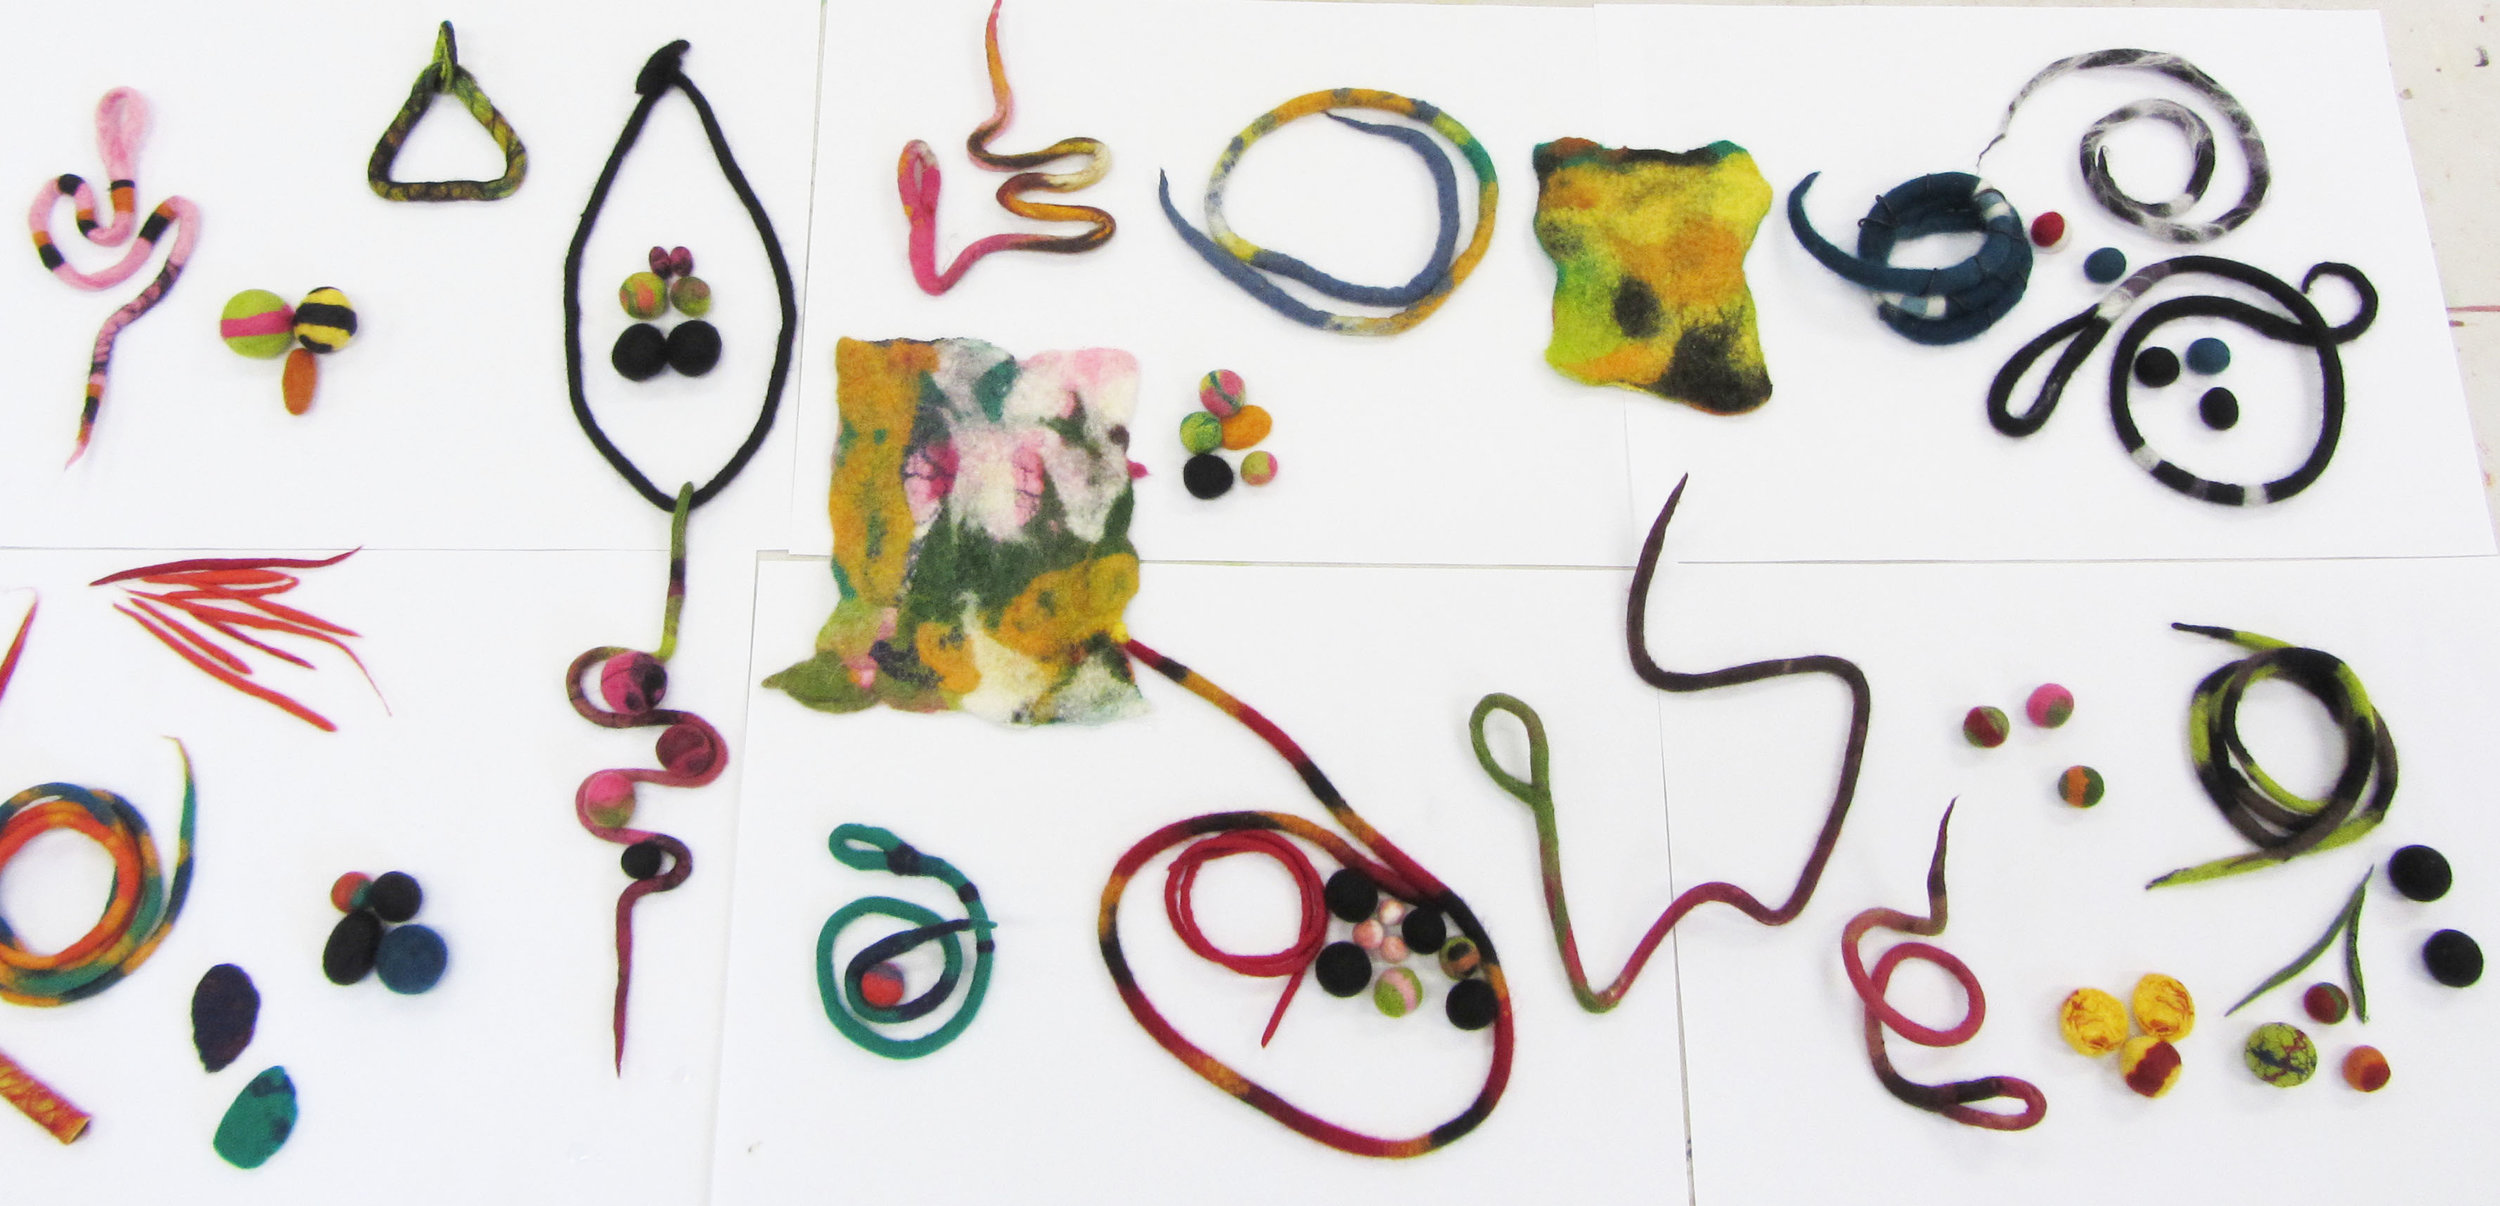 Participants' outcomes from a felting workshop